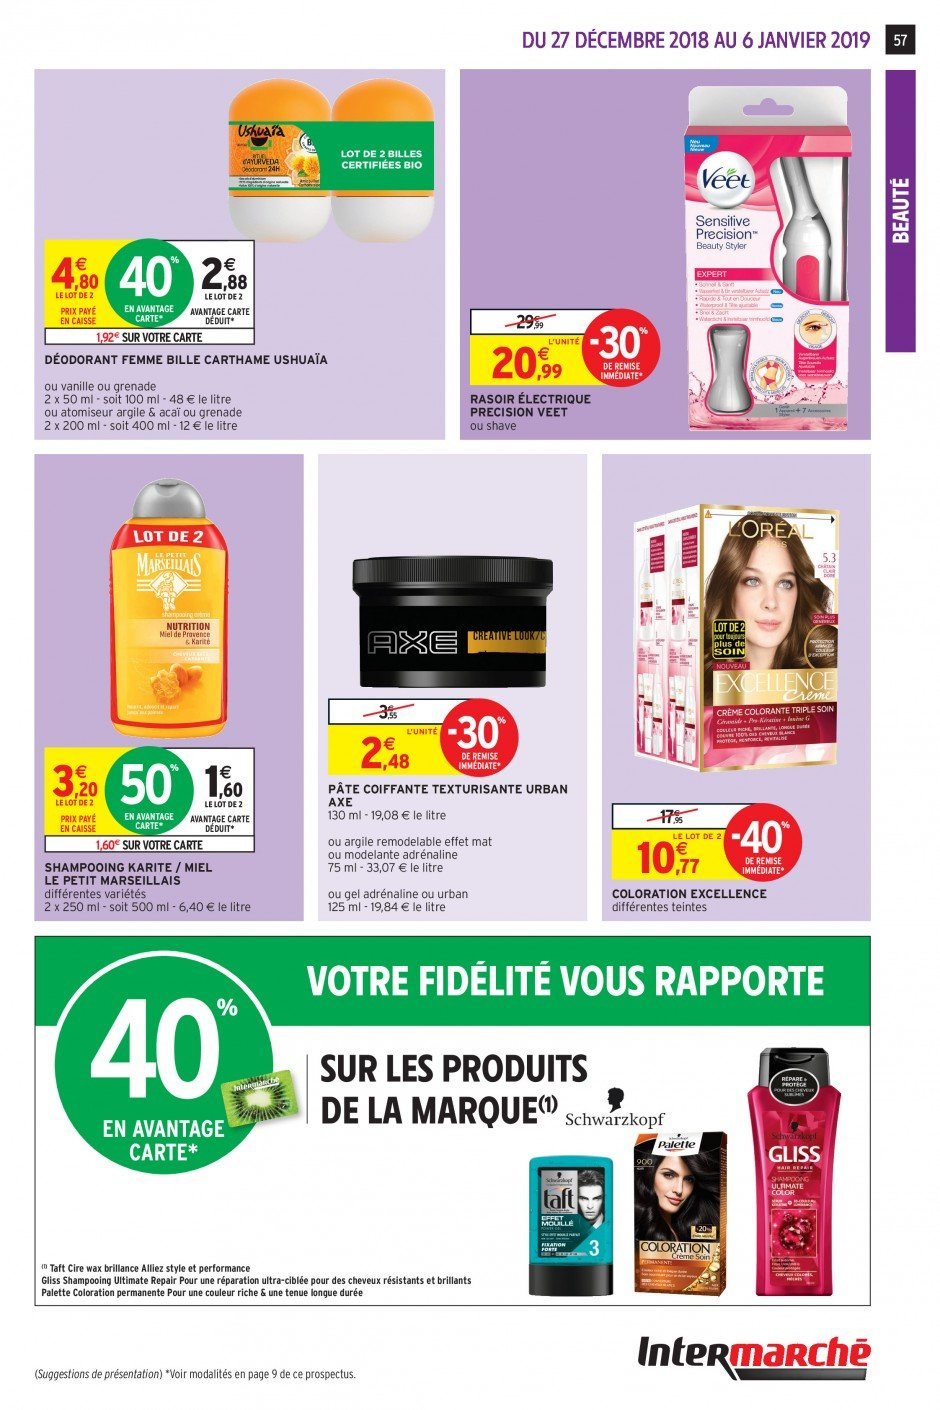 Catalogue Intermarché - 27.12.2018 - 06.01.2019. Page 56.